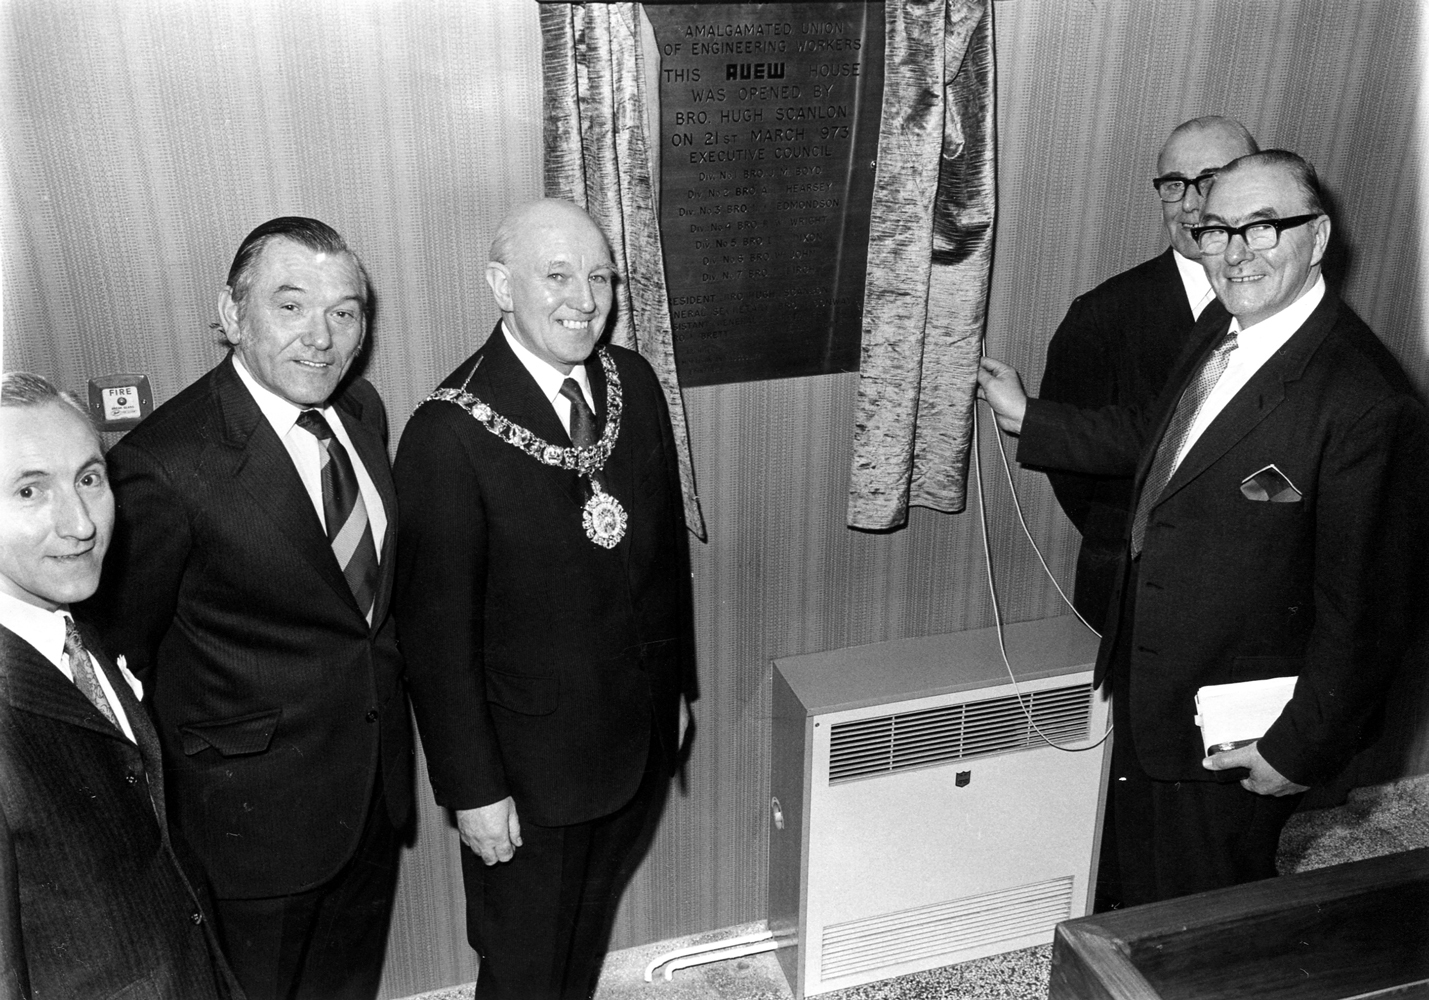 Opening Of An Amalgamated Union Of Engineering Workers House, 21 March 1973